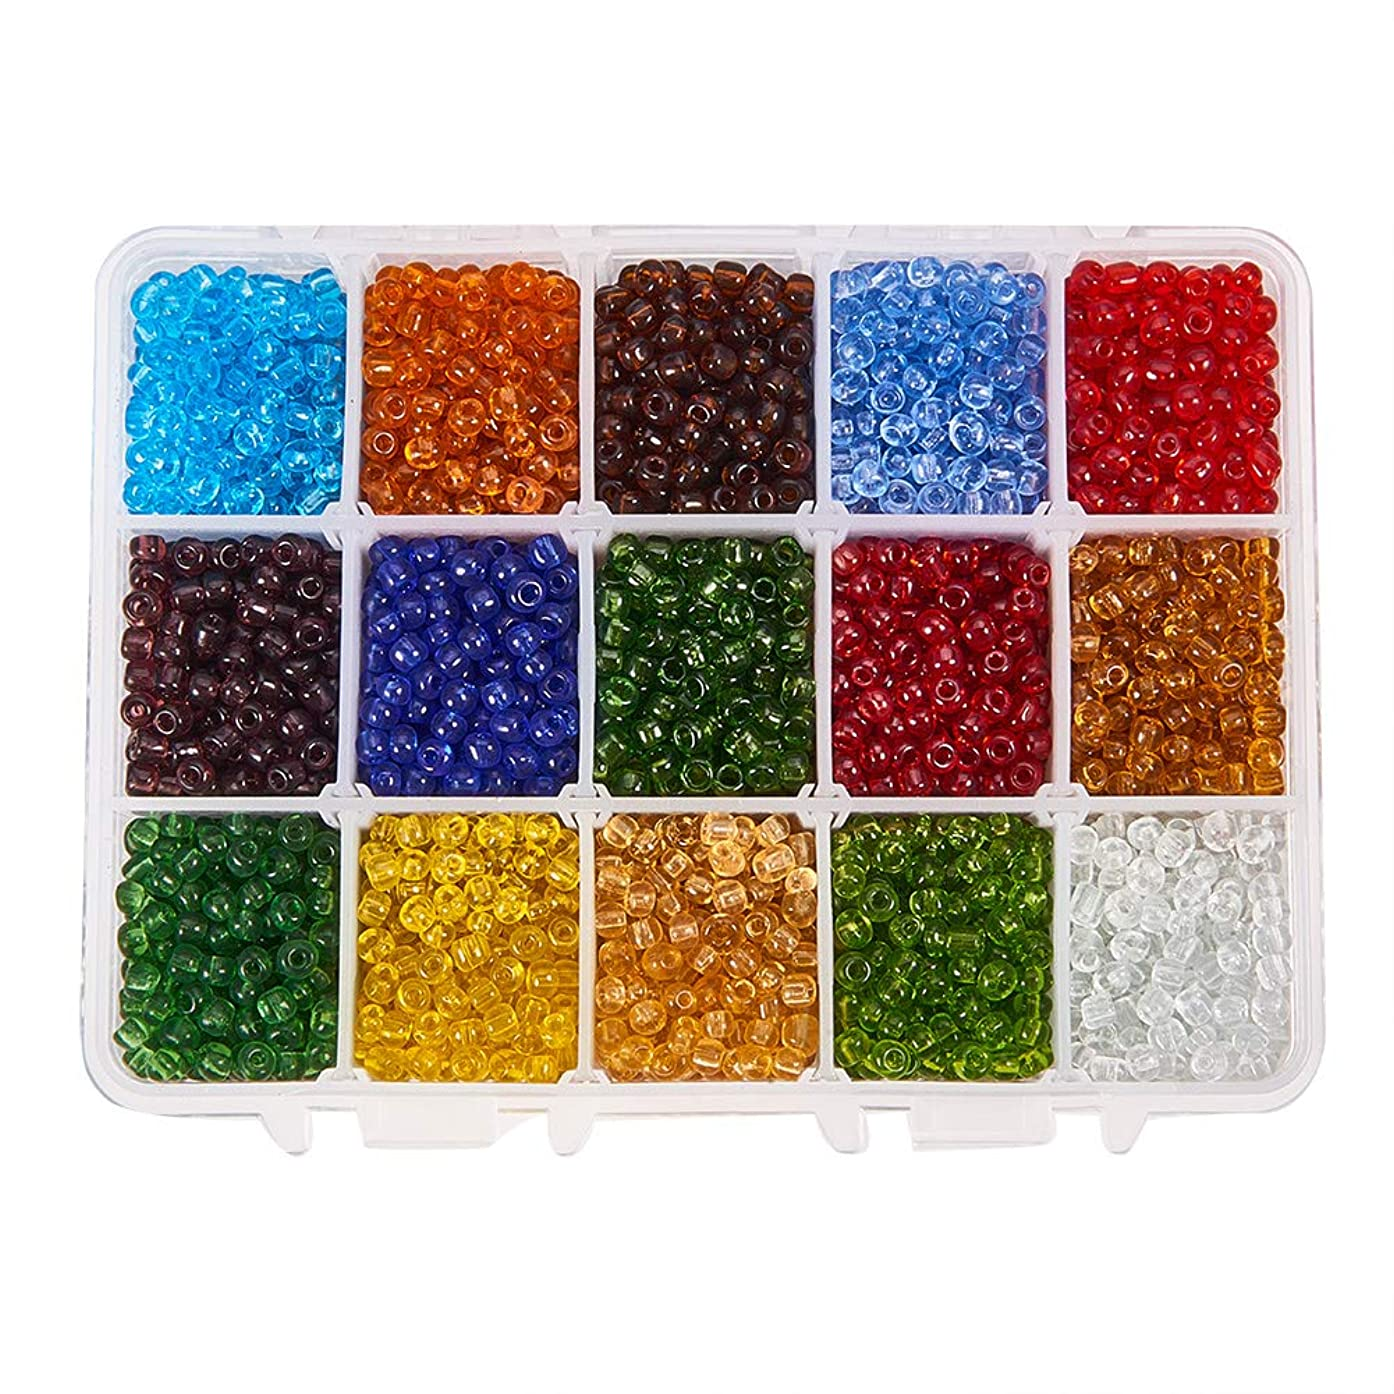 PH PandaHall About 3300pcs 15 Color 6/0 Transparent Glass Seed Beads 4mm Seed Beads with Container Box for Jewelry Making